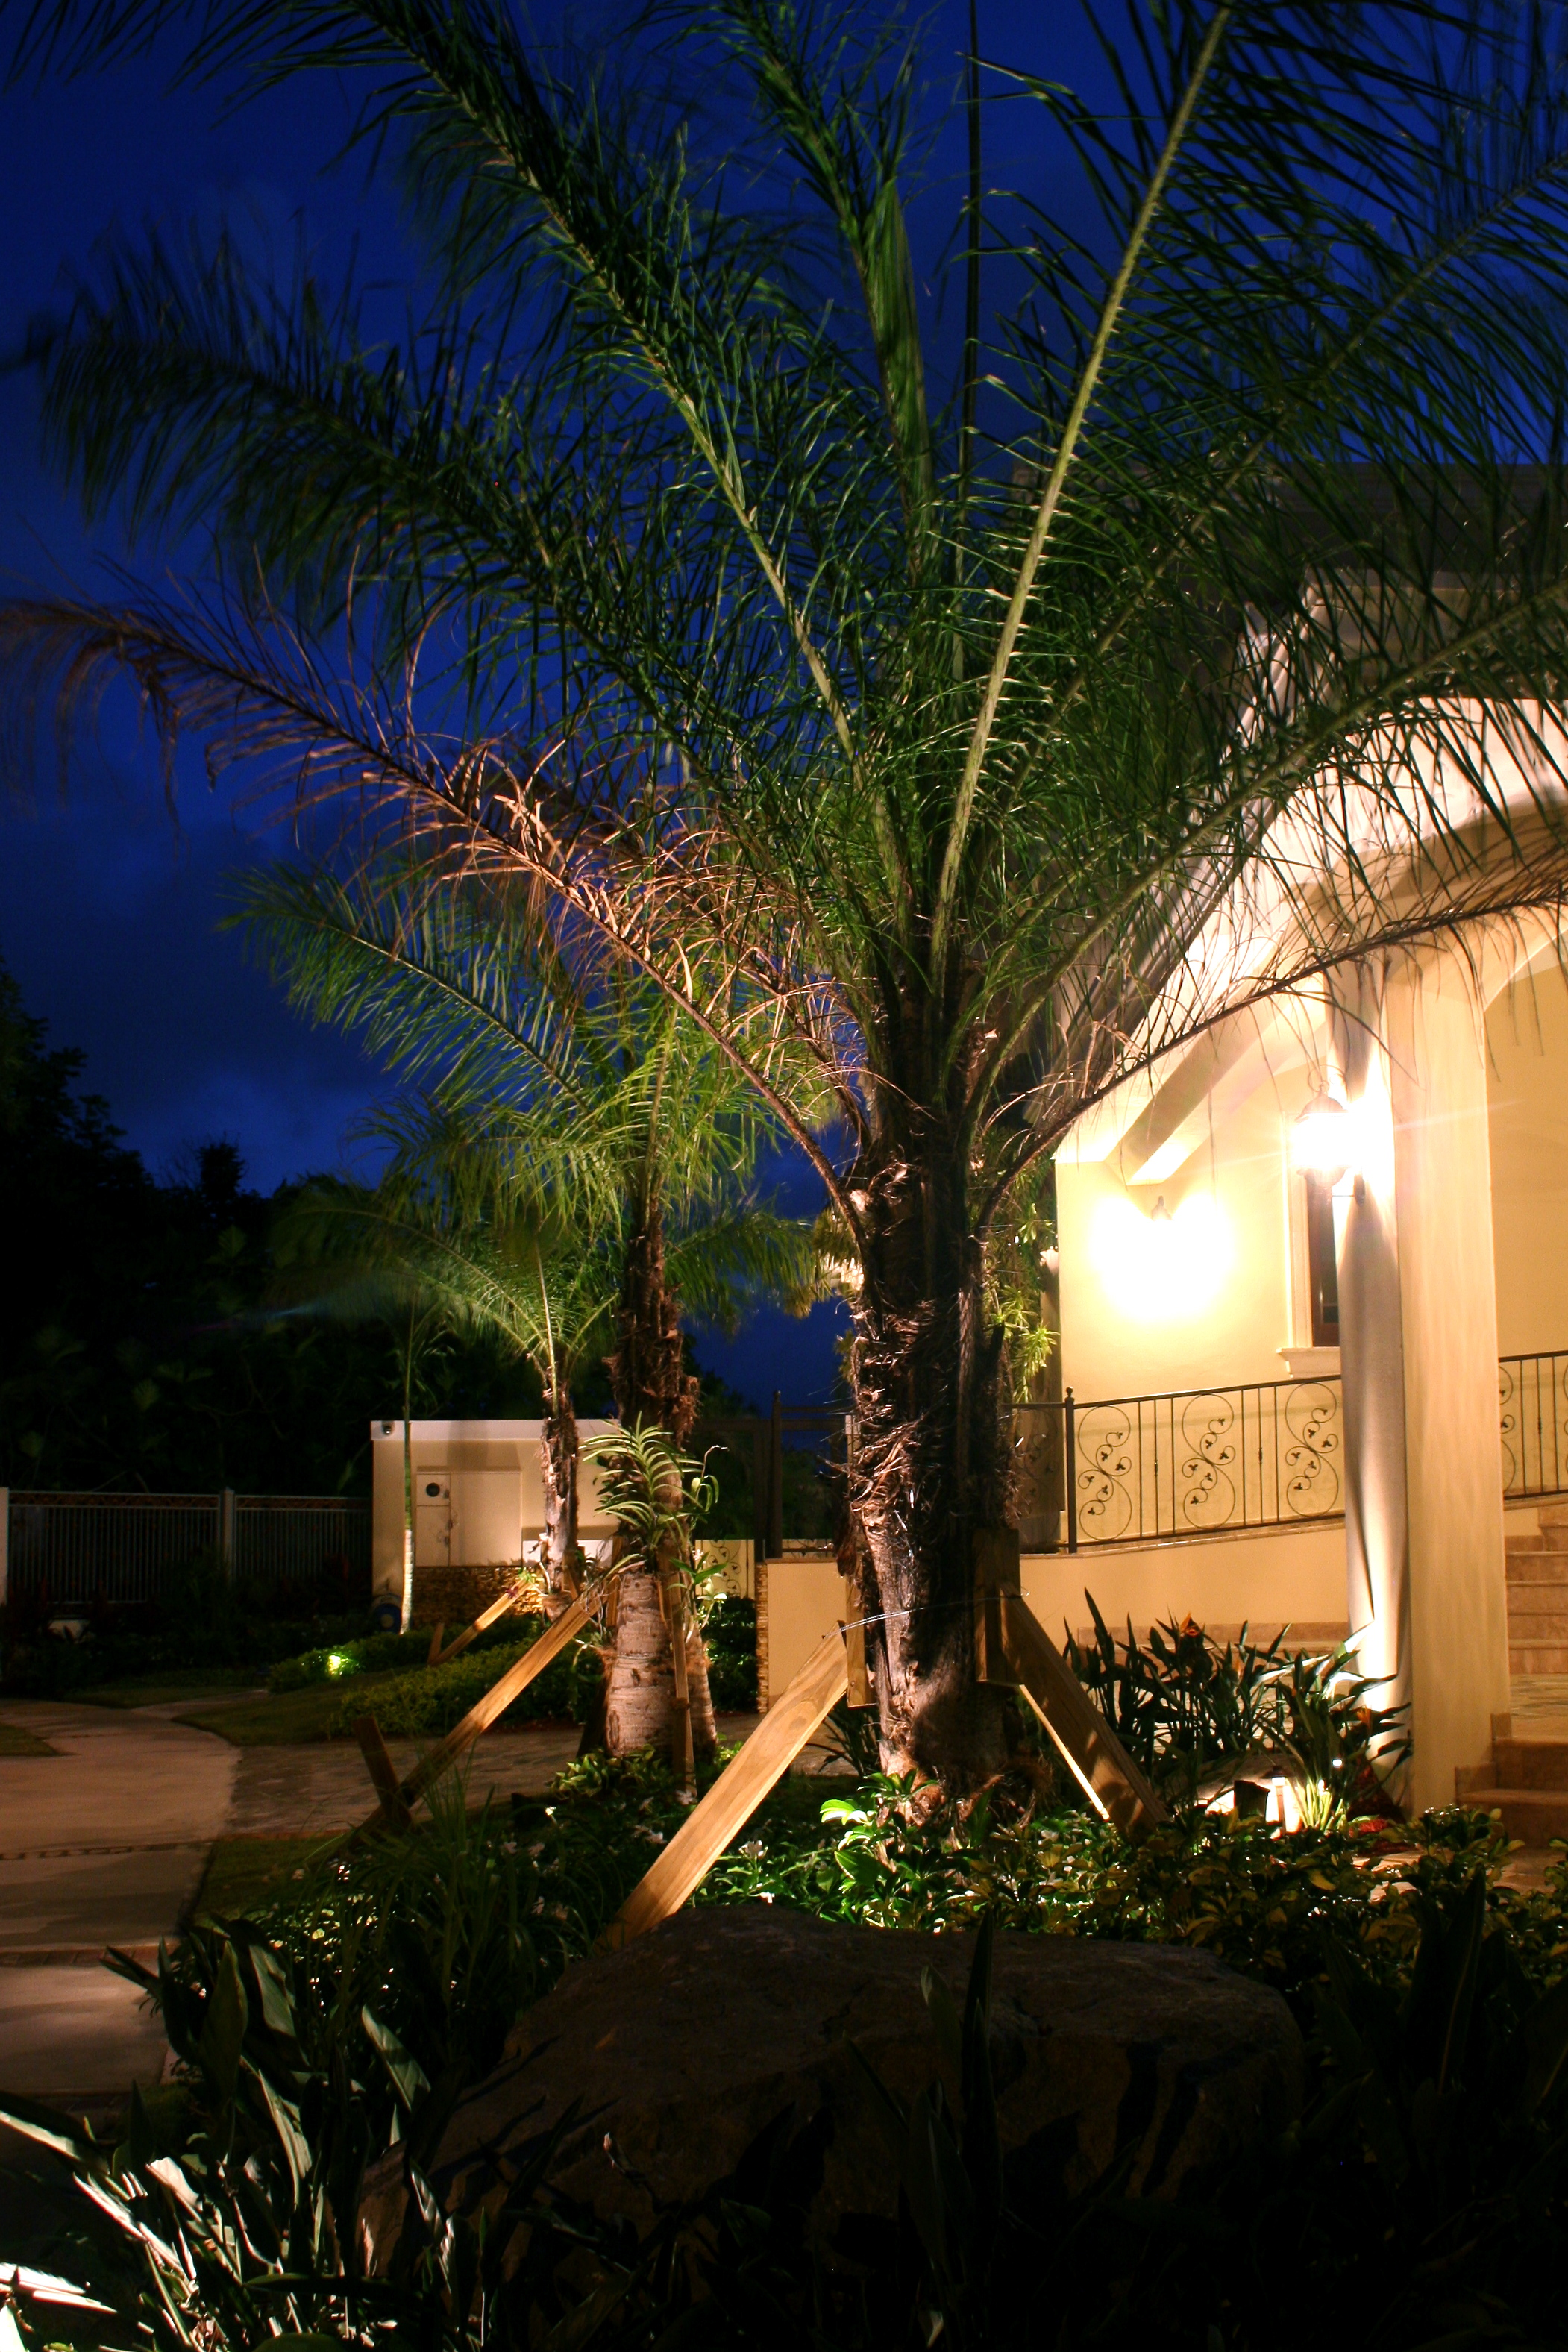 We love our snowbird customers here at outdoor lighting outdoor lighting in tampa bay can be set to make it look like you are home aloadofball Choice Image